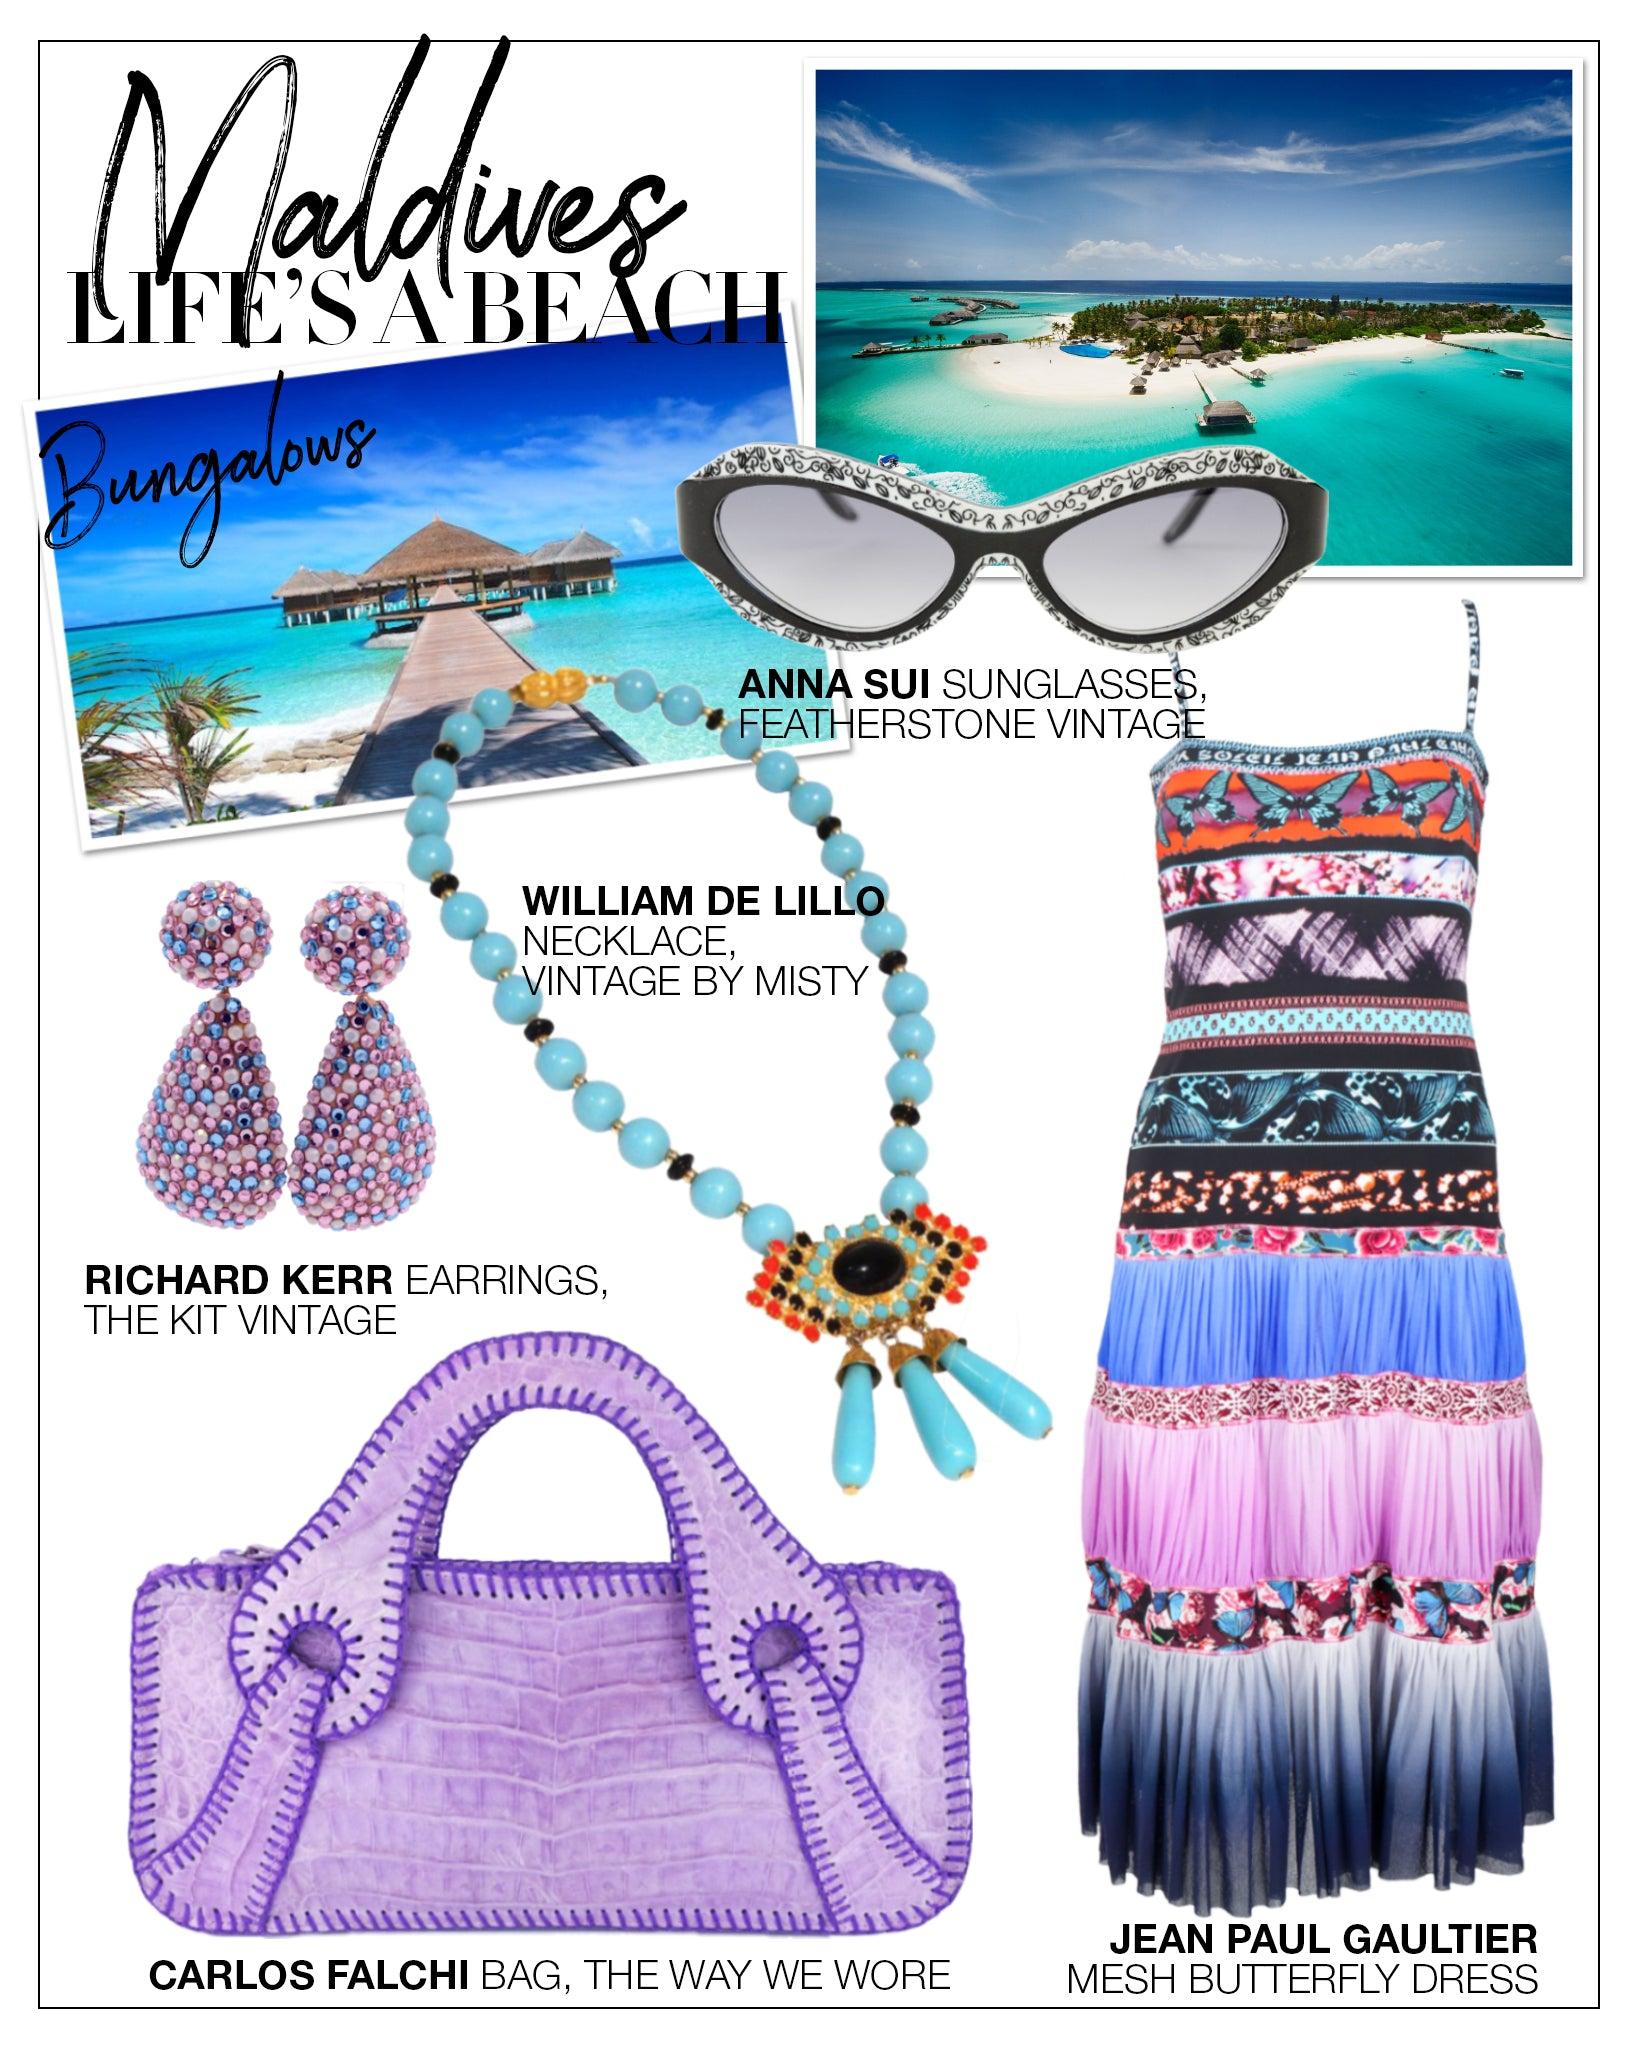 Recess DressCode Escapism Covid Quarantine Vacation Dreams Maldives John Paul Gaultier Mesh Dress